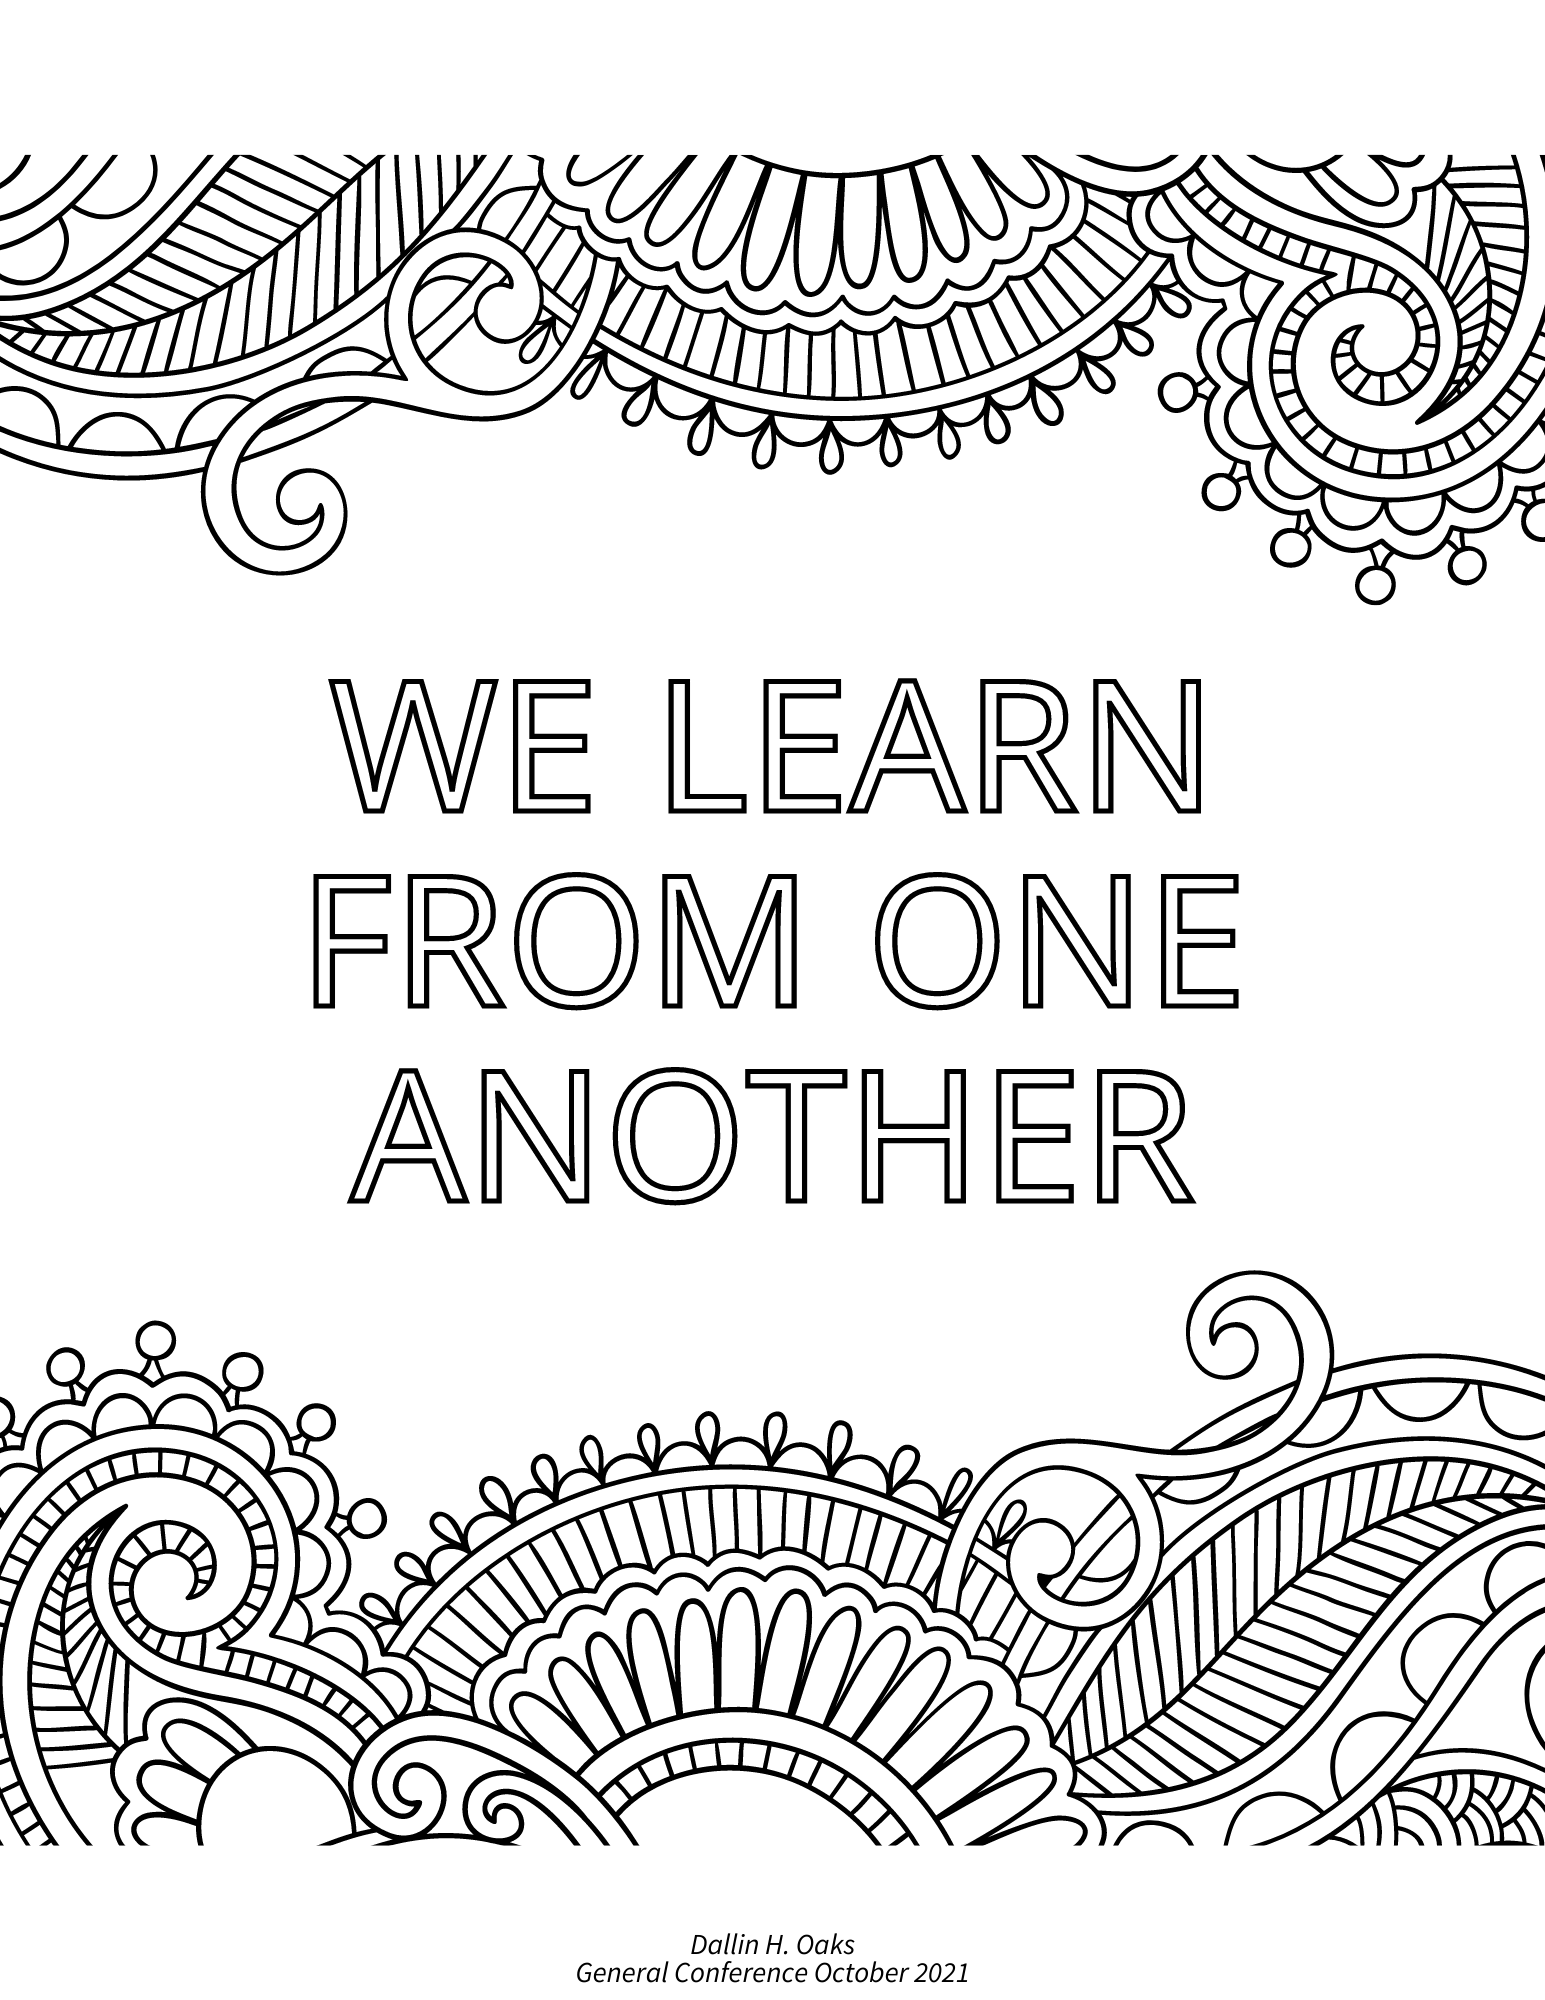 general conference quotes, we learn from one another, dallin h oaks october 2021 general conference quote, free printable coloring page